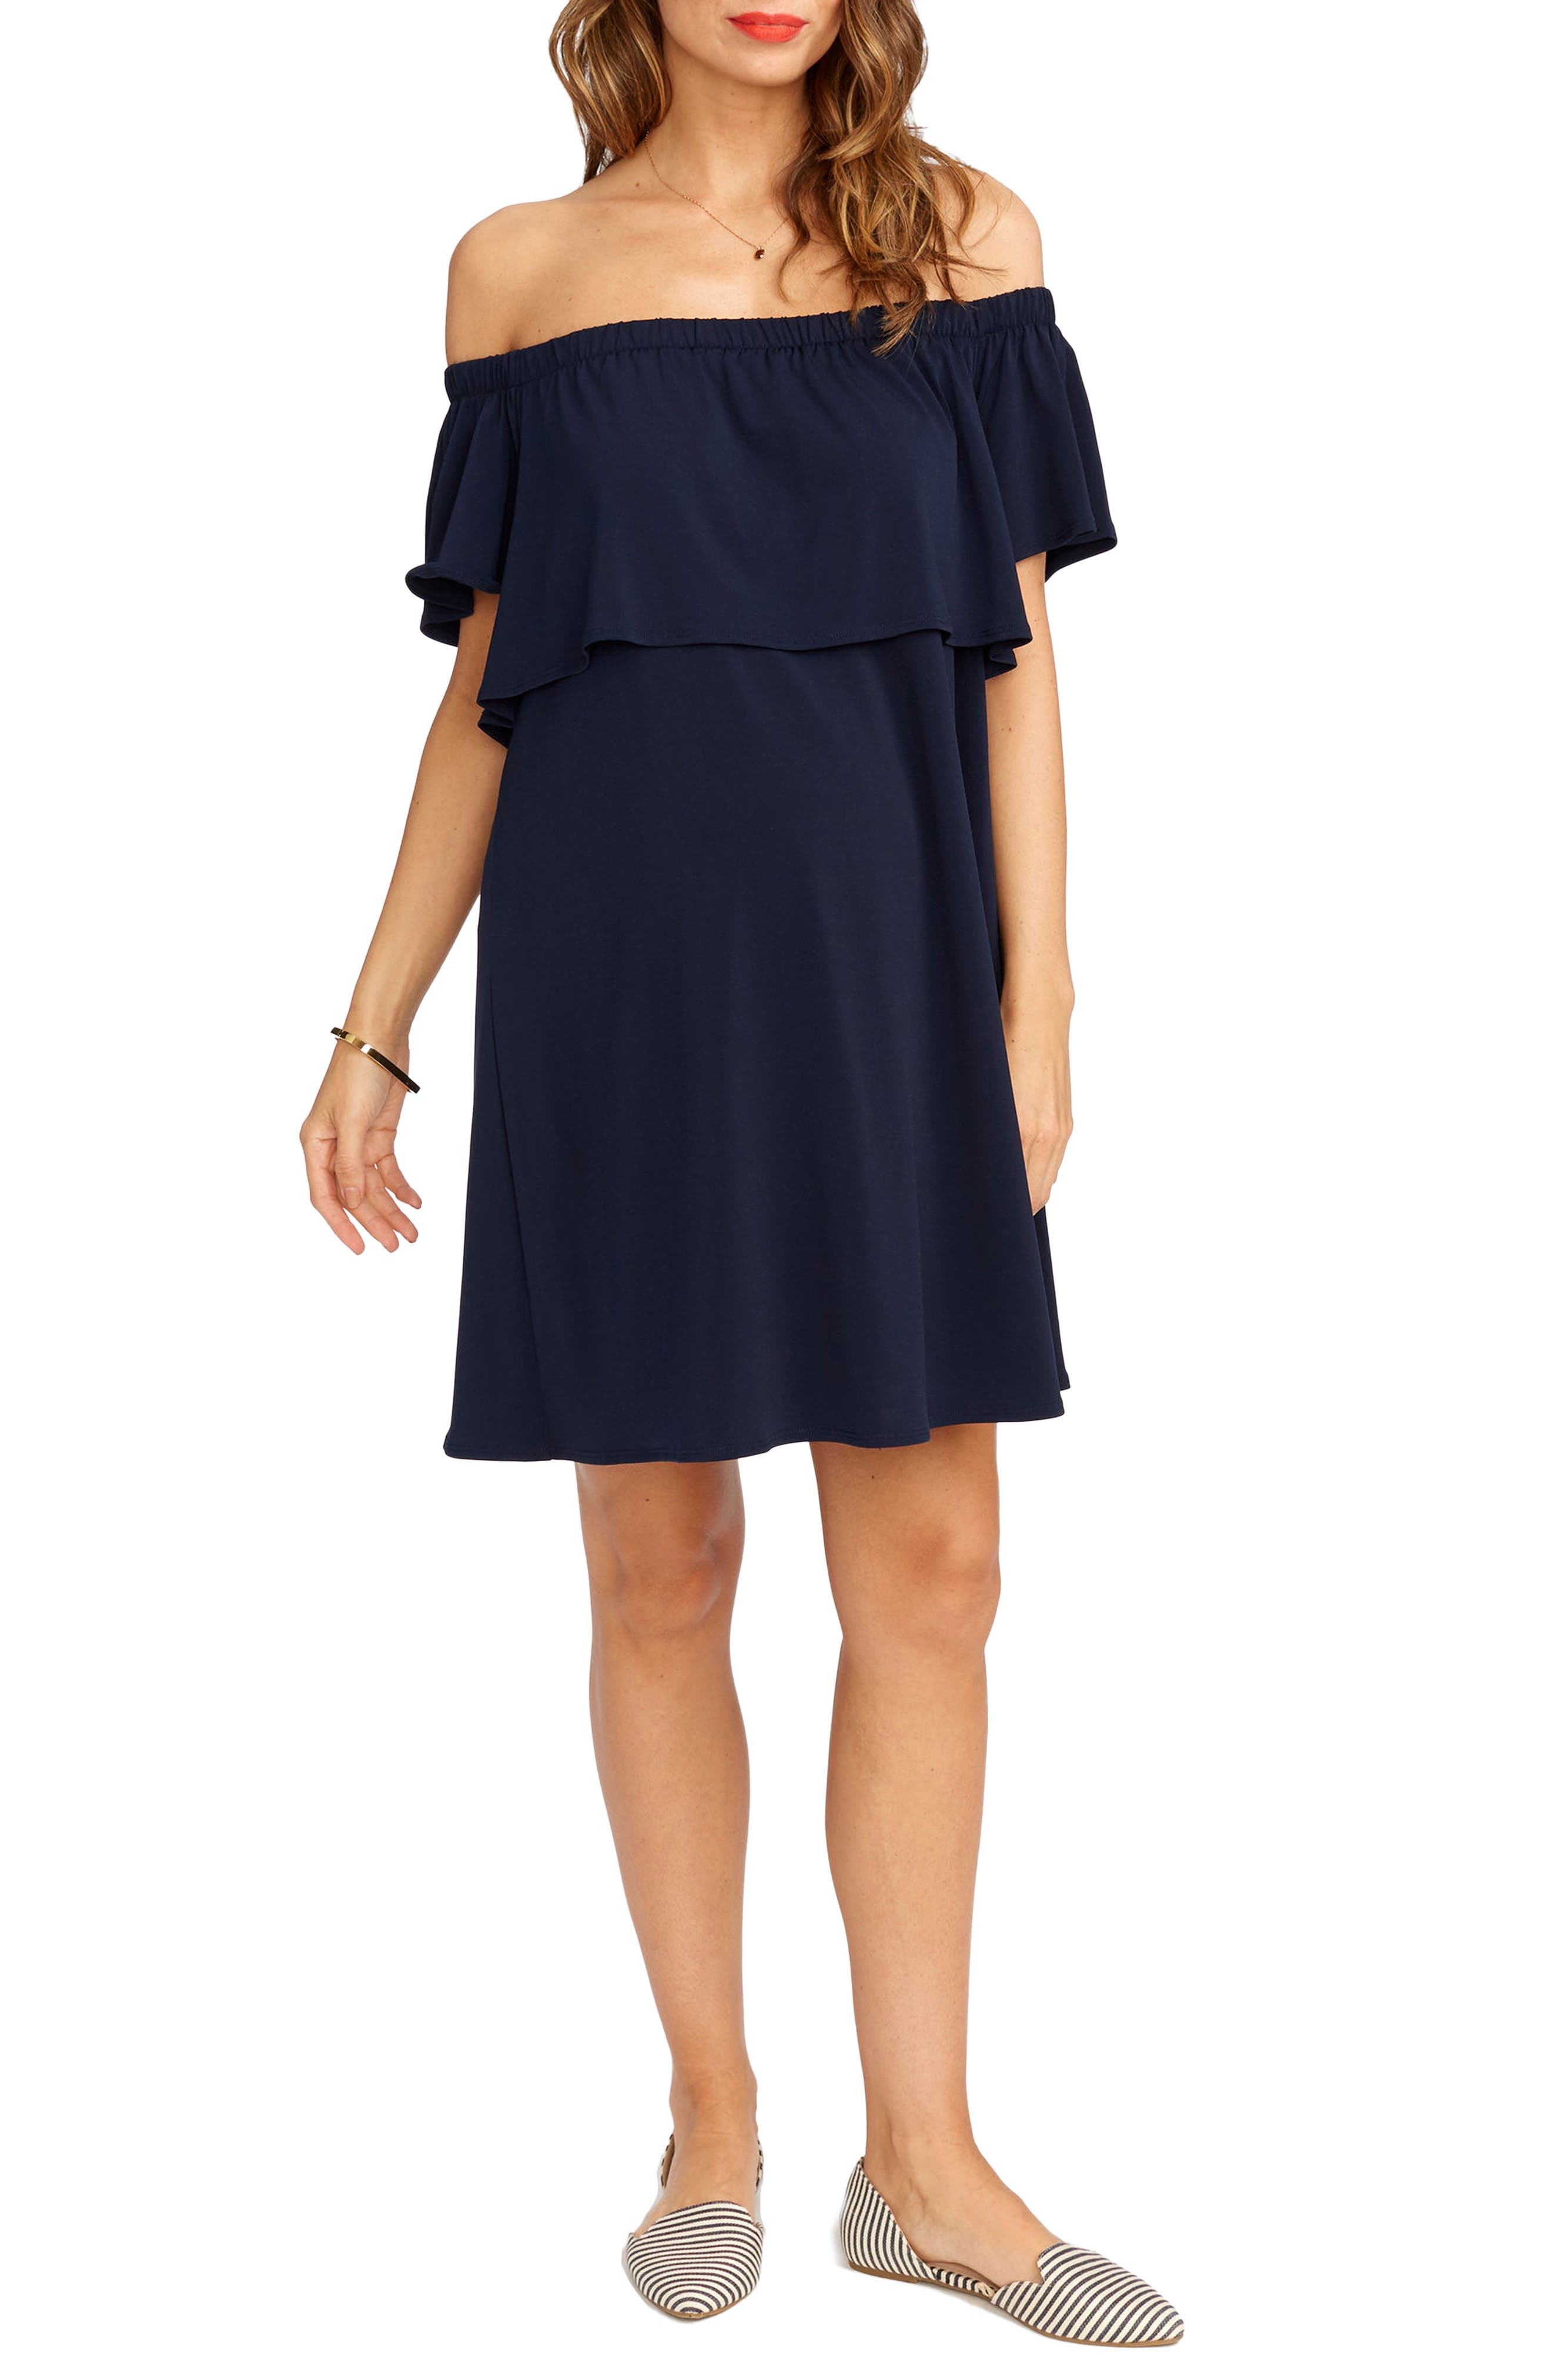 Rosie Pope Luisa Off the Shoulder Maternity Dress